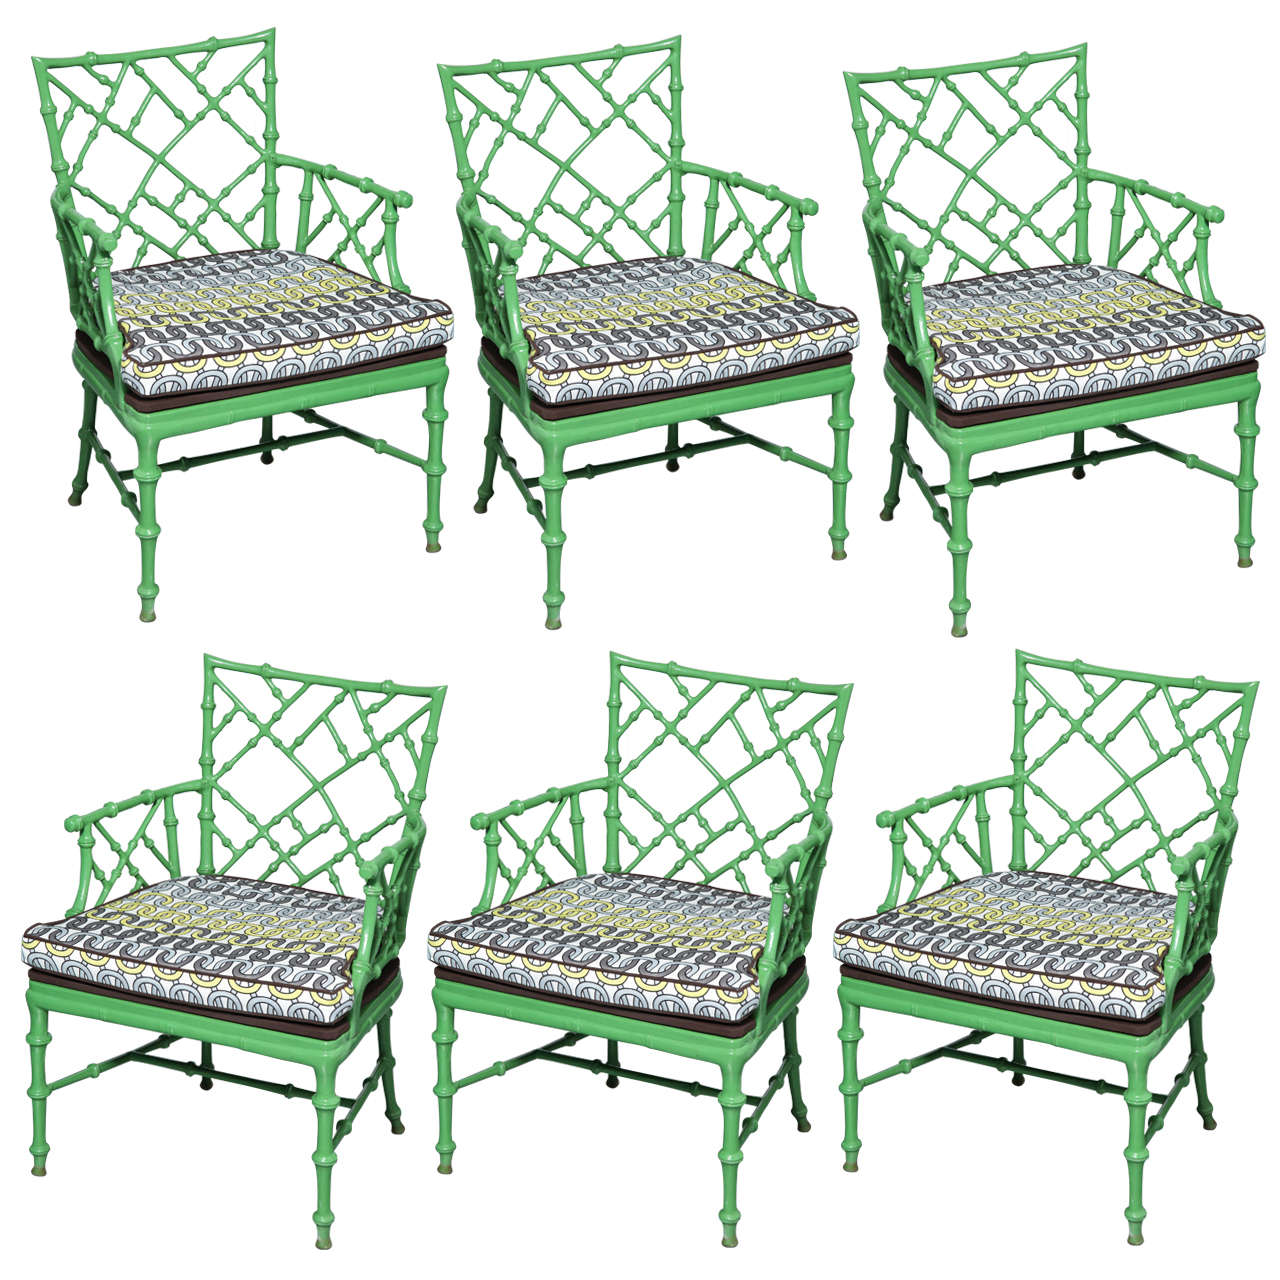 Seating Mini Gravita Armchair In Oriental Garden Fabric: Phyllis Morris Faux Bamboo Cast Metal Arm Chairs, Set Of 6